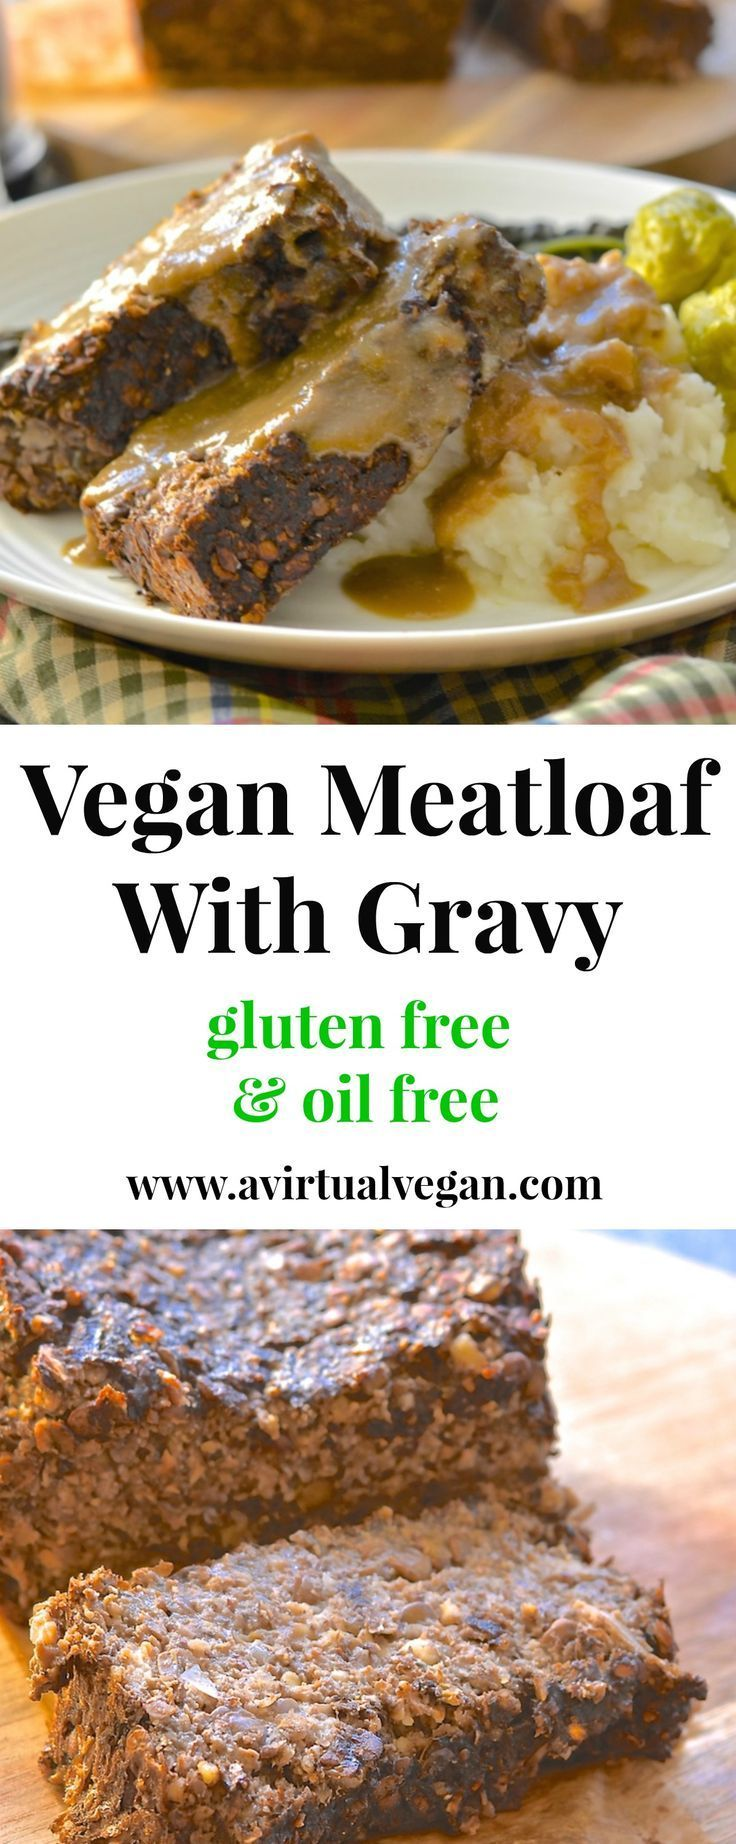 This vegan meatloaf is incredibly easy to make & is sure to please with its deep & savoury flavour. Serve sliced & smothered in rich, thick gravy for a truly satisfying meal! #veganmeatloaf #vegan #vegetarian